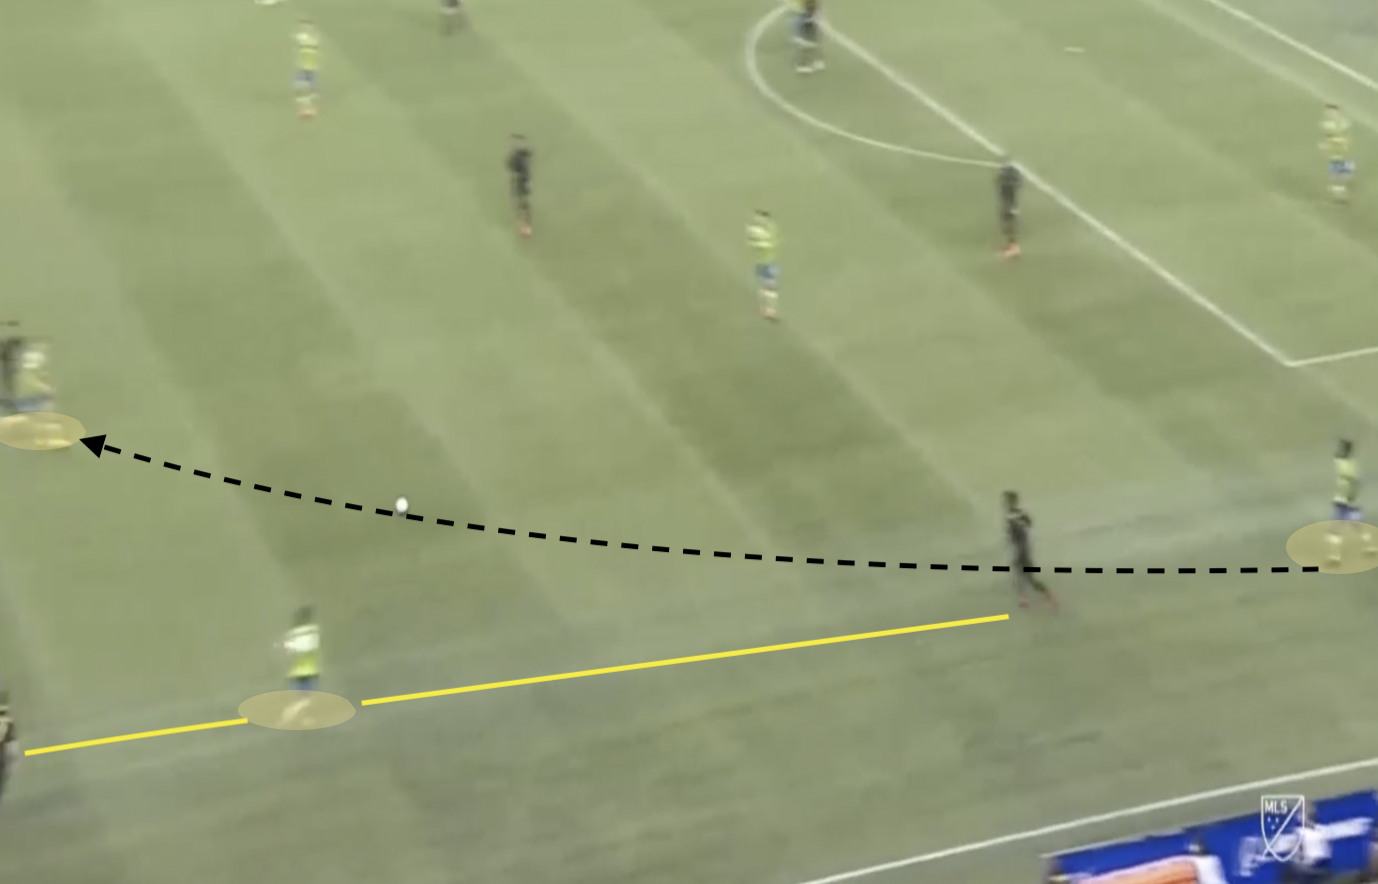 MLS 2020: Seattle Sounders vs LAFC - tactical analysis tactics